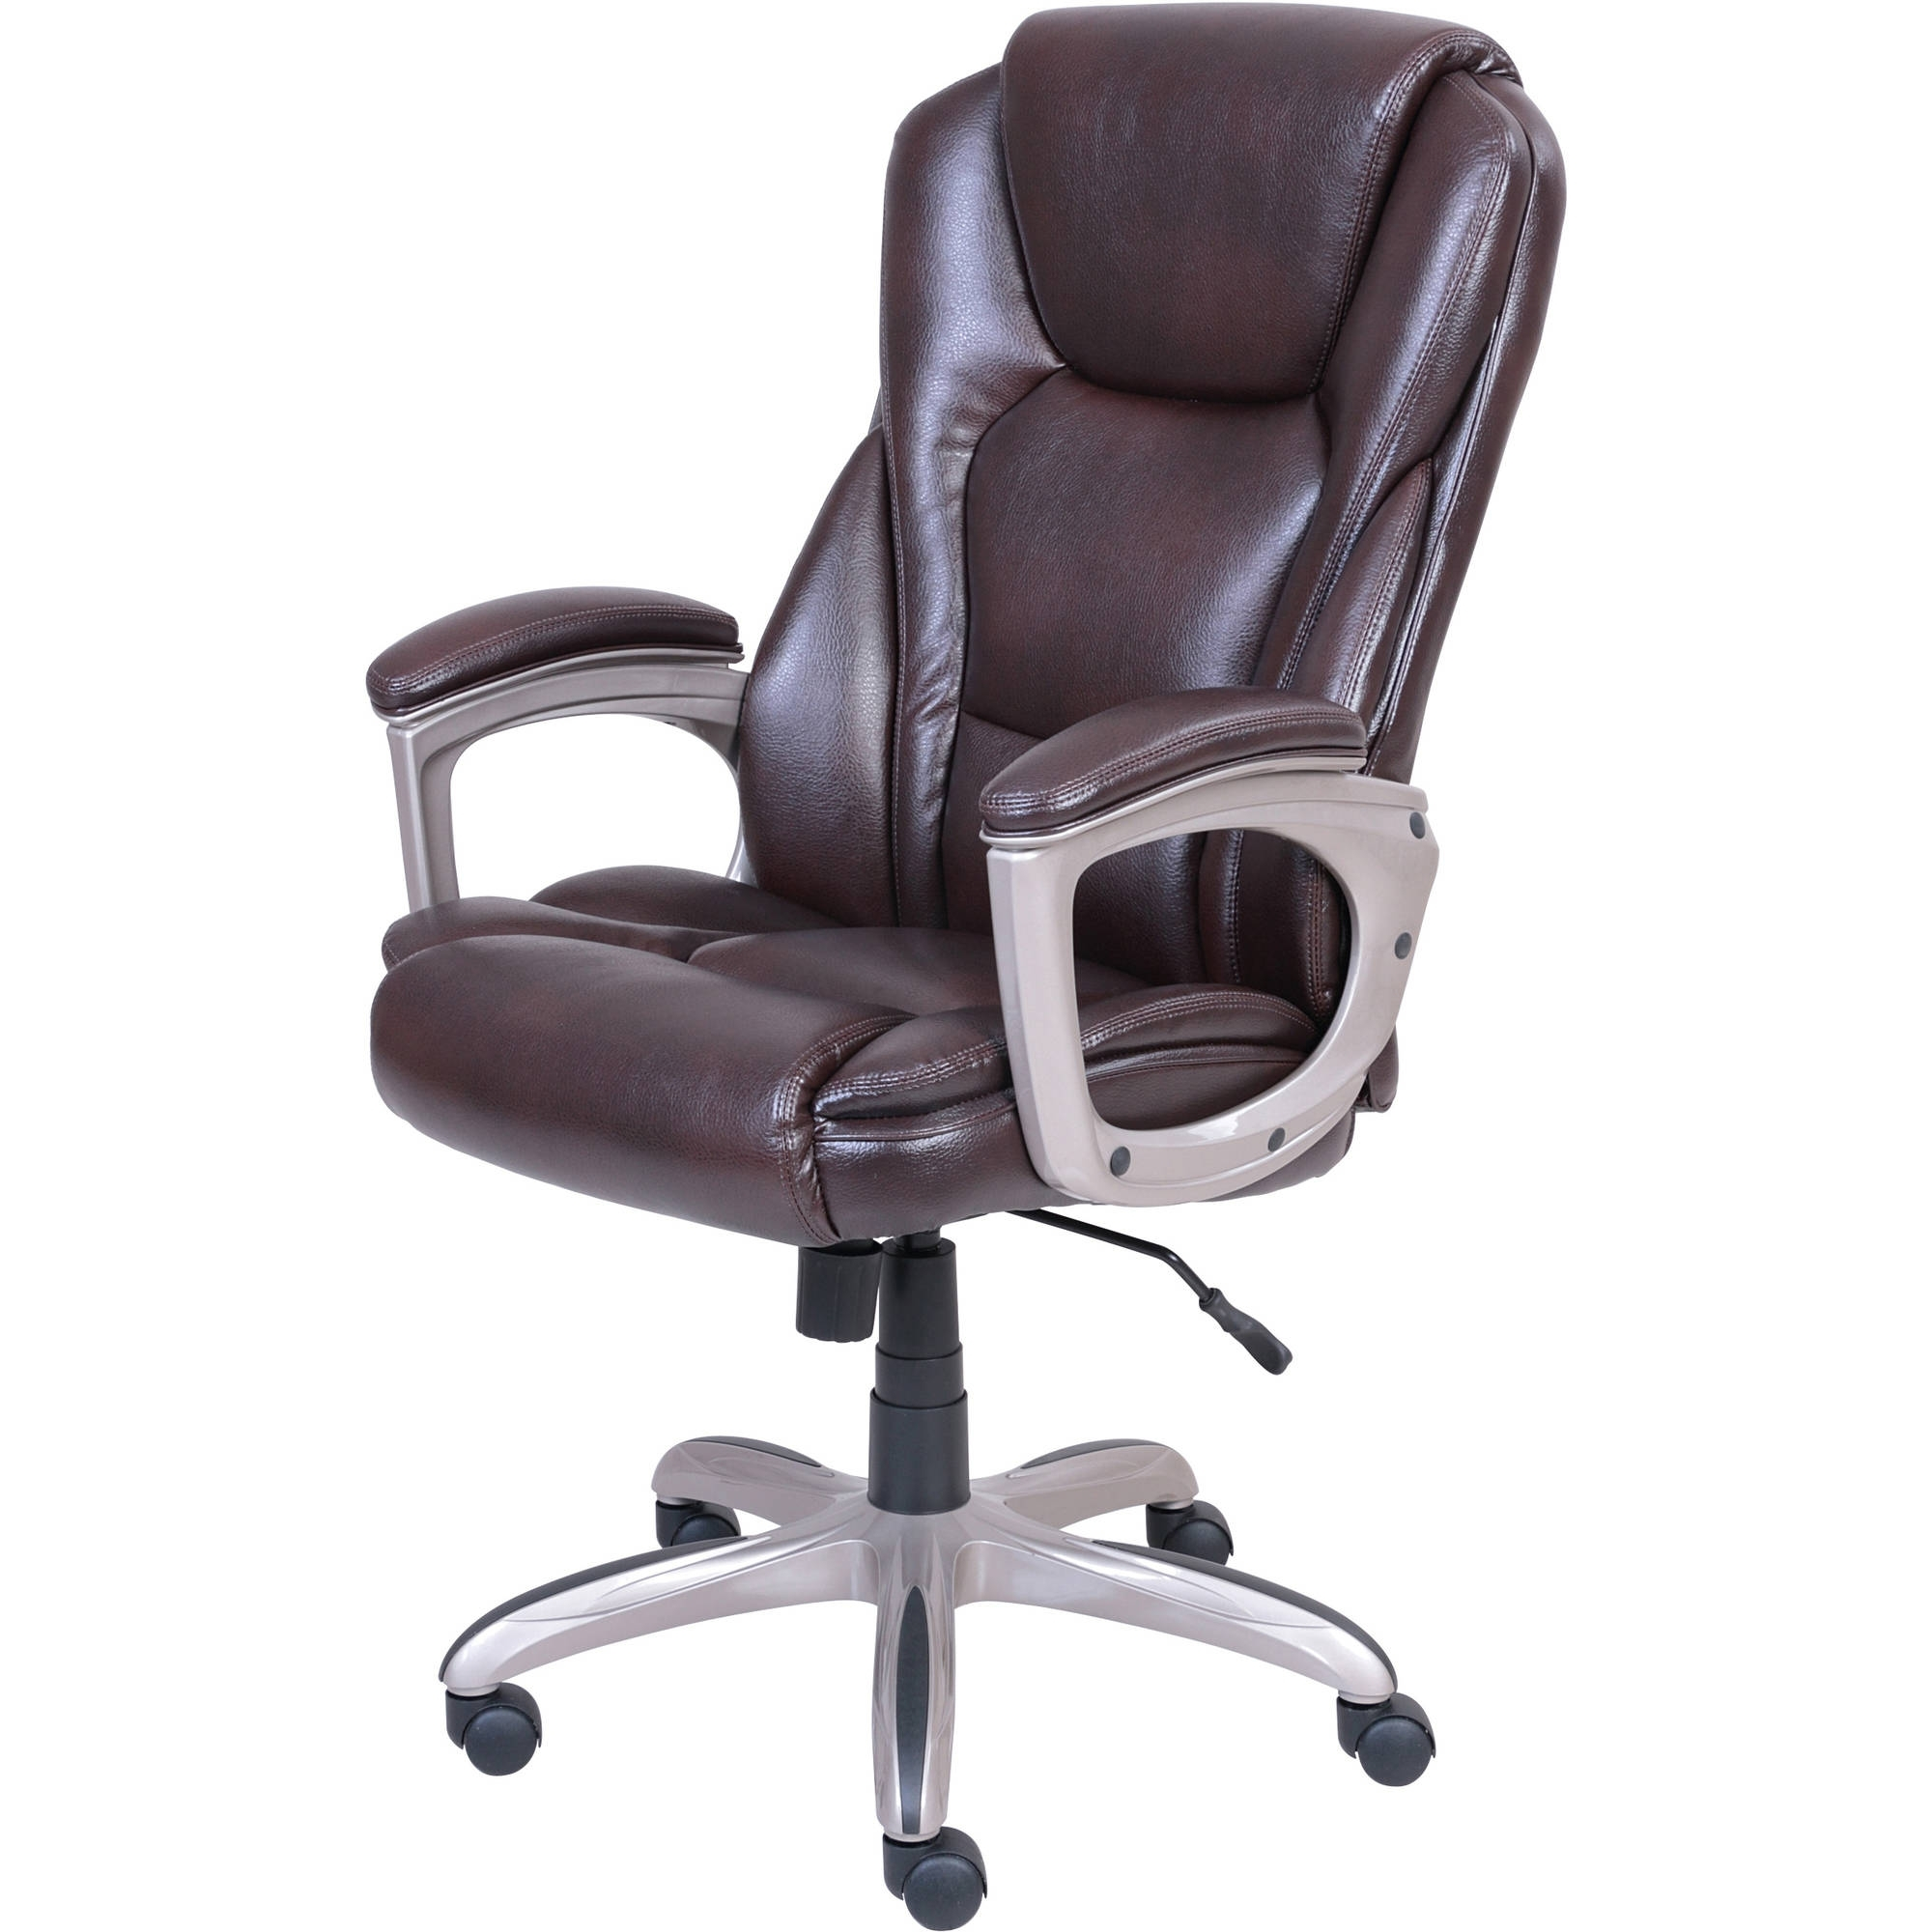 Xl Executive Office Chairs Throughout Famous Serta Big & Tall Commercial Office Chair With Memory Foam (View 20 of 20)